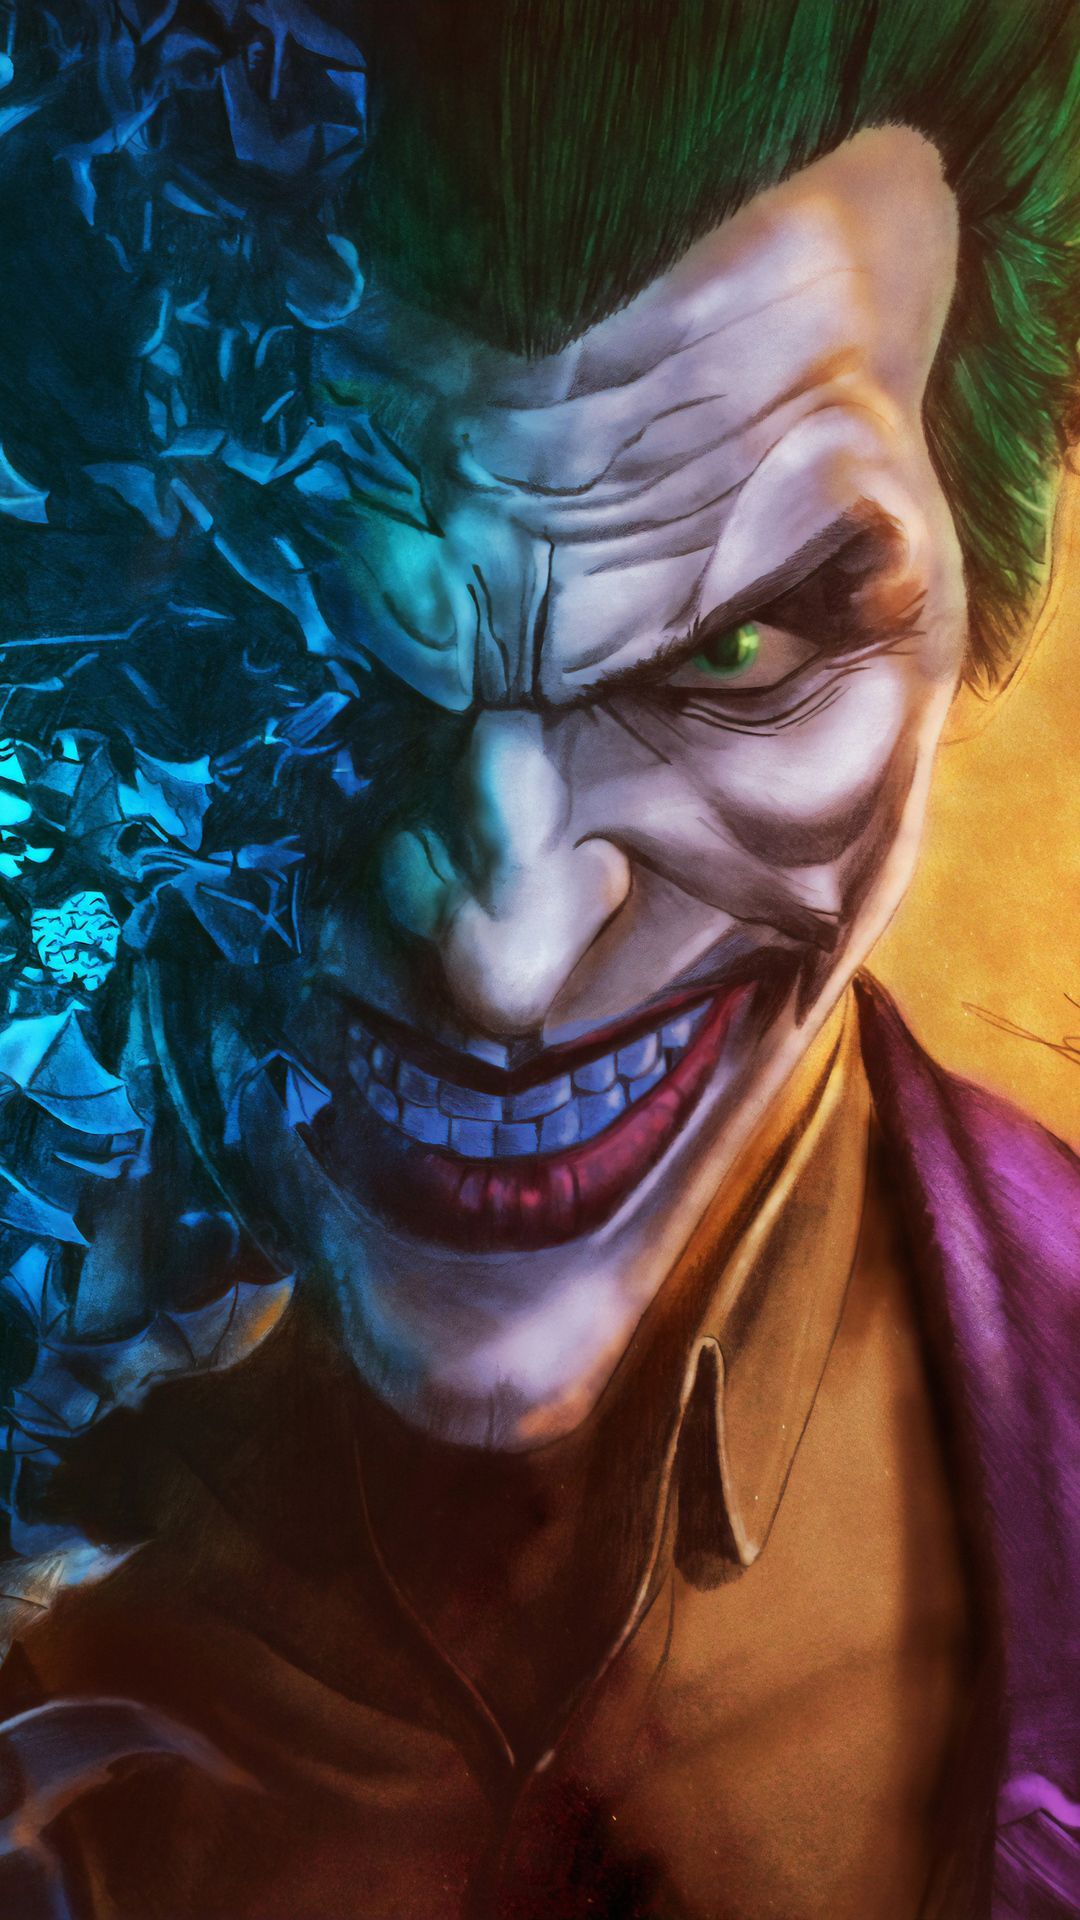 Joker Iphone Wallpaper Download Joker Wallpapers Joker Iphone Wallpaper Batman Joker Wallpaper